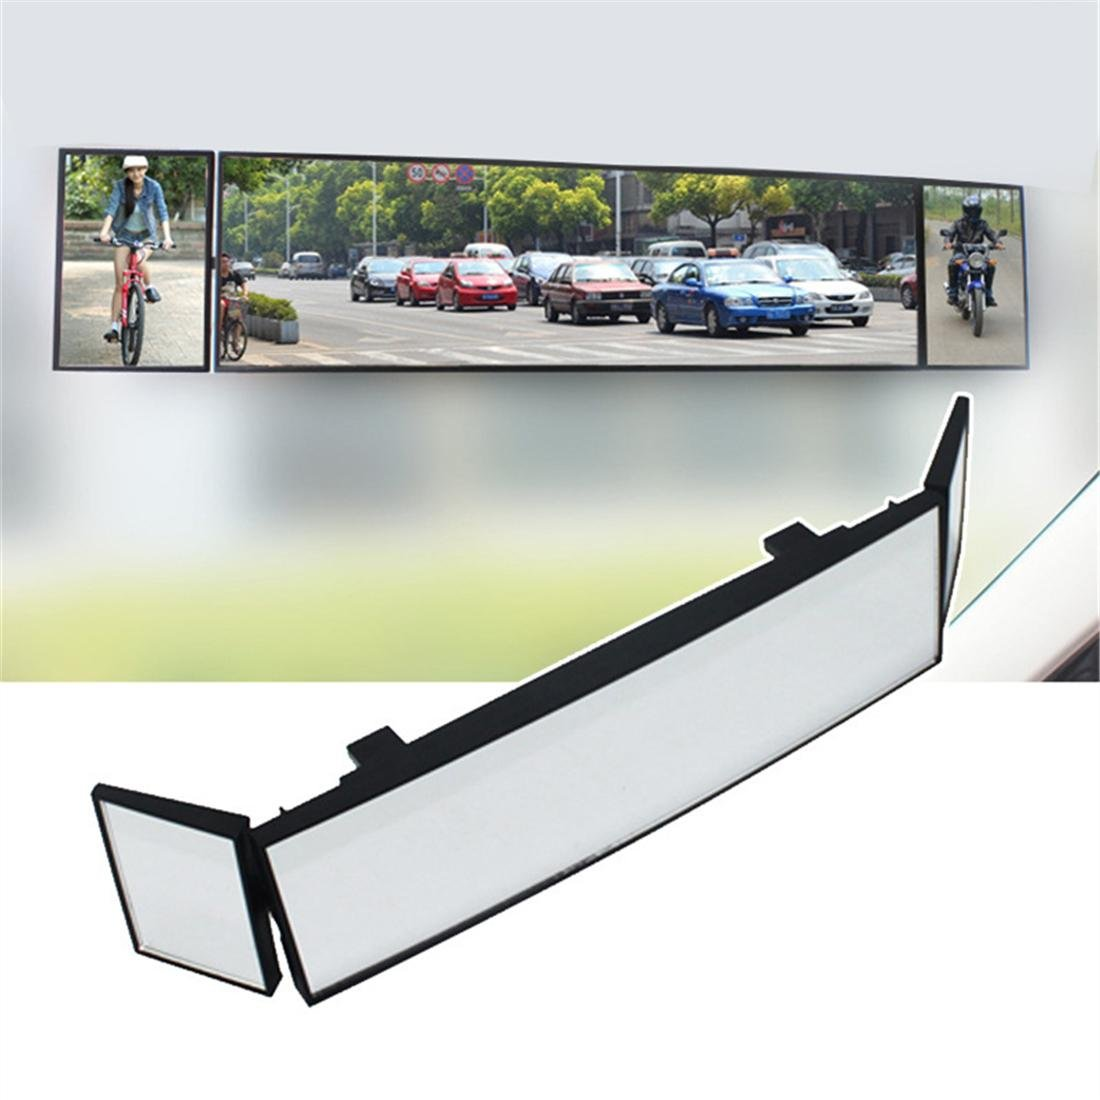 Car Rearview Mirrors Foldable Rotatable 3 Mirrors Set Universal Wide Vision, Panoramic Rear View Mirror Clip Zcar